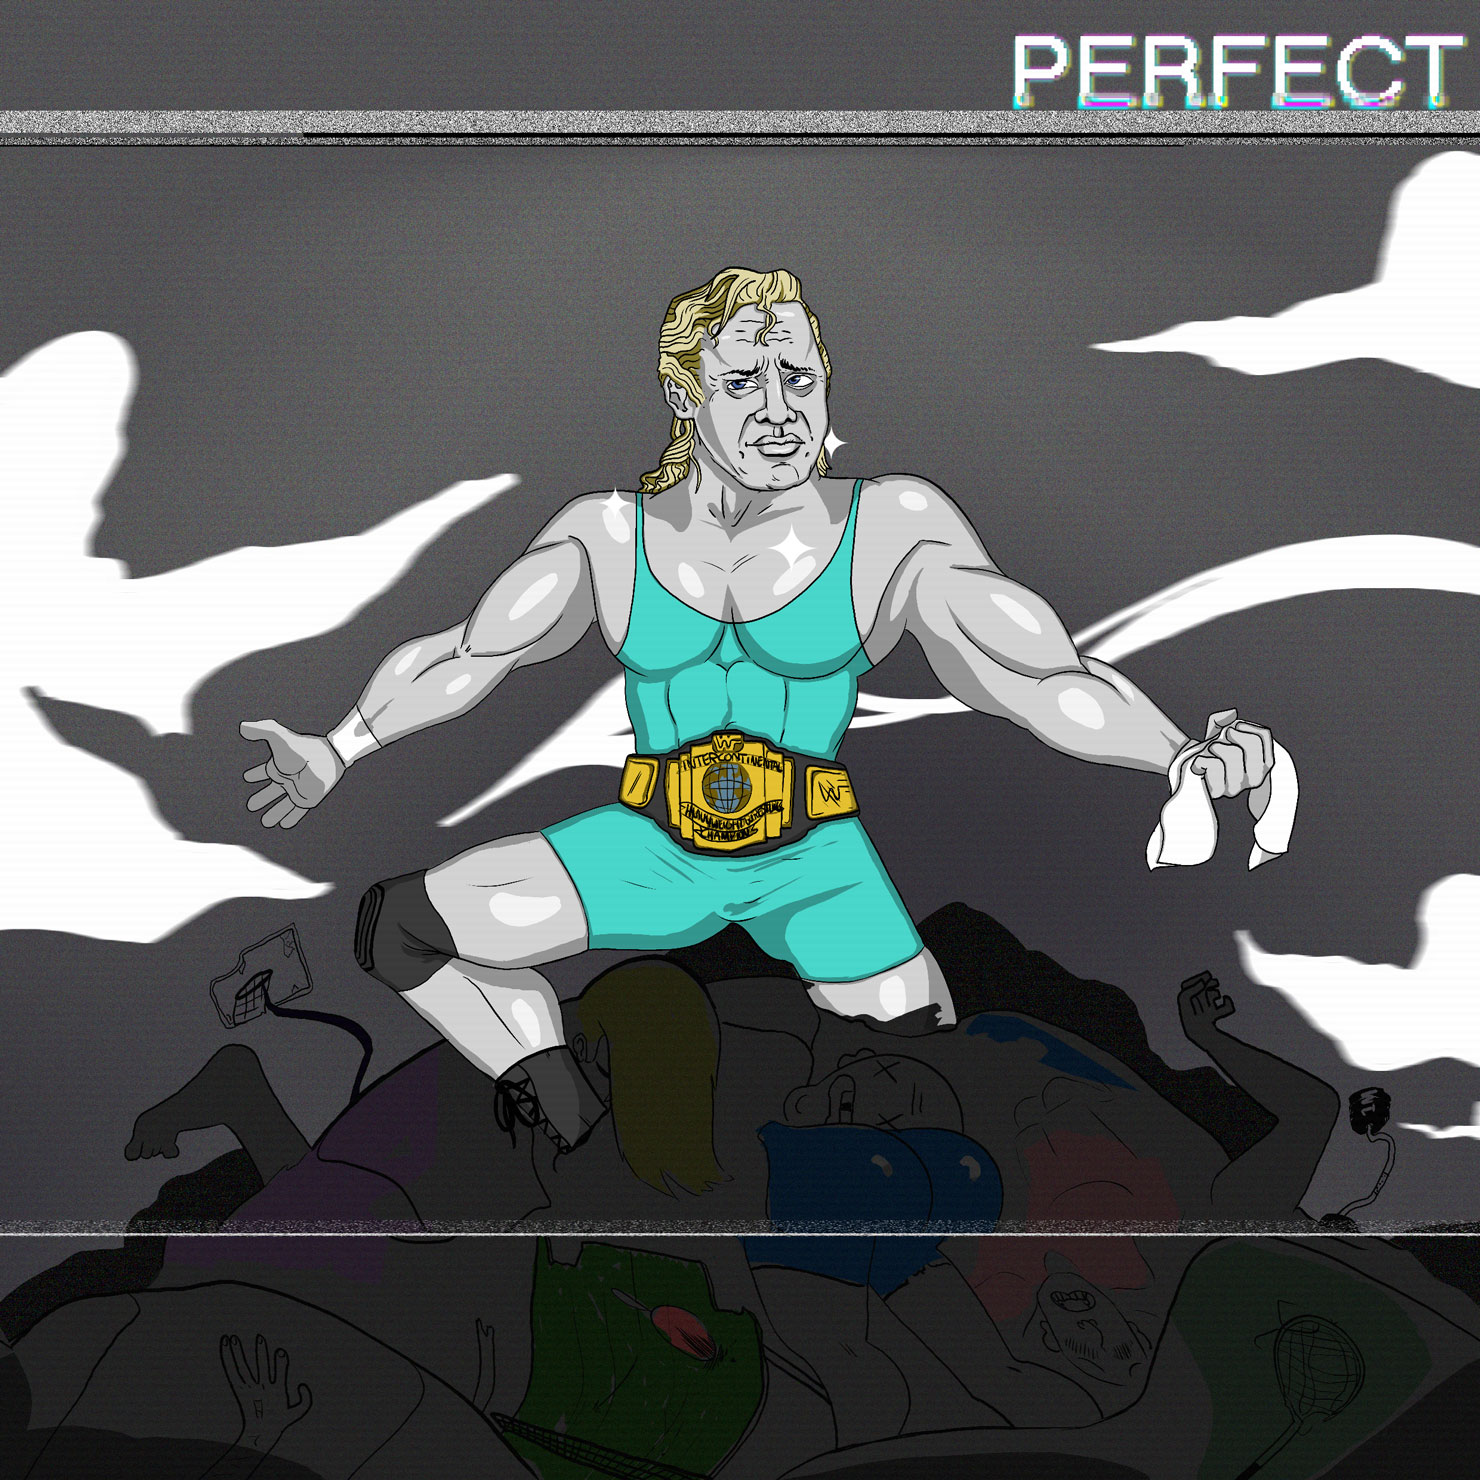 #How2Perfect